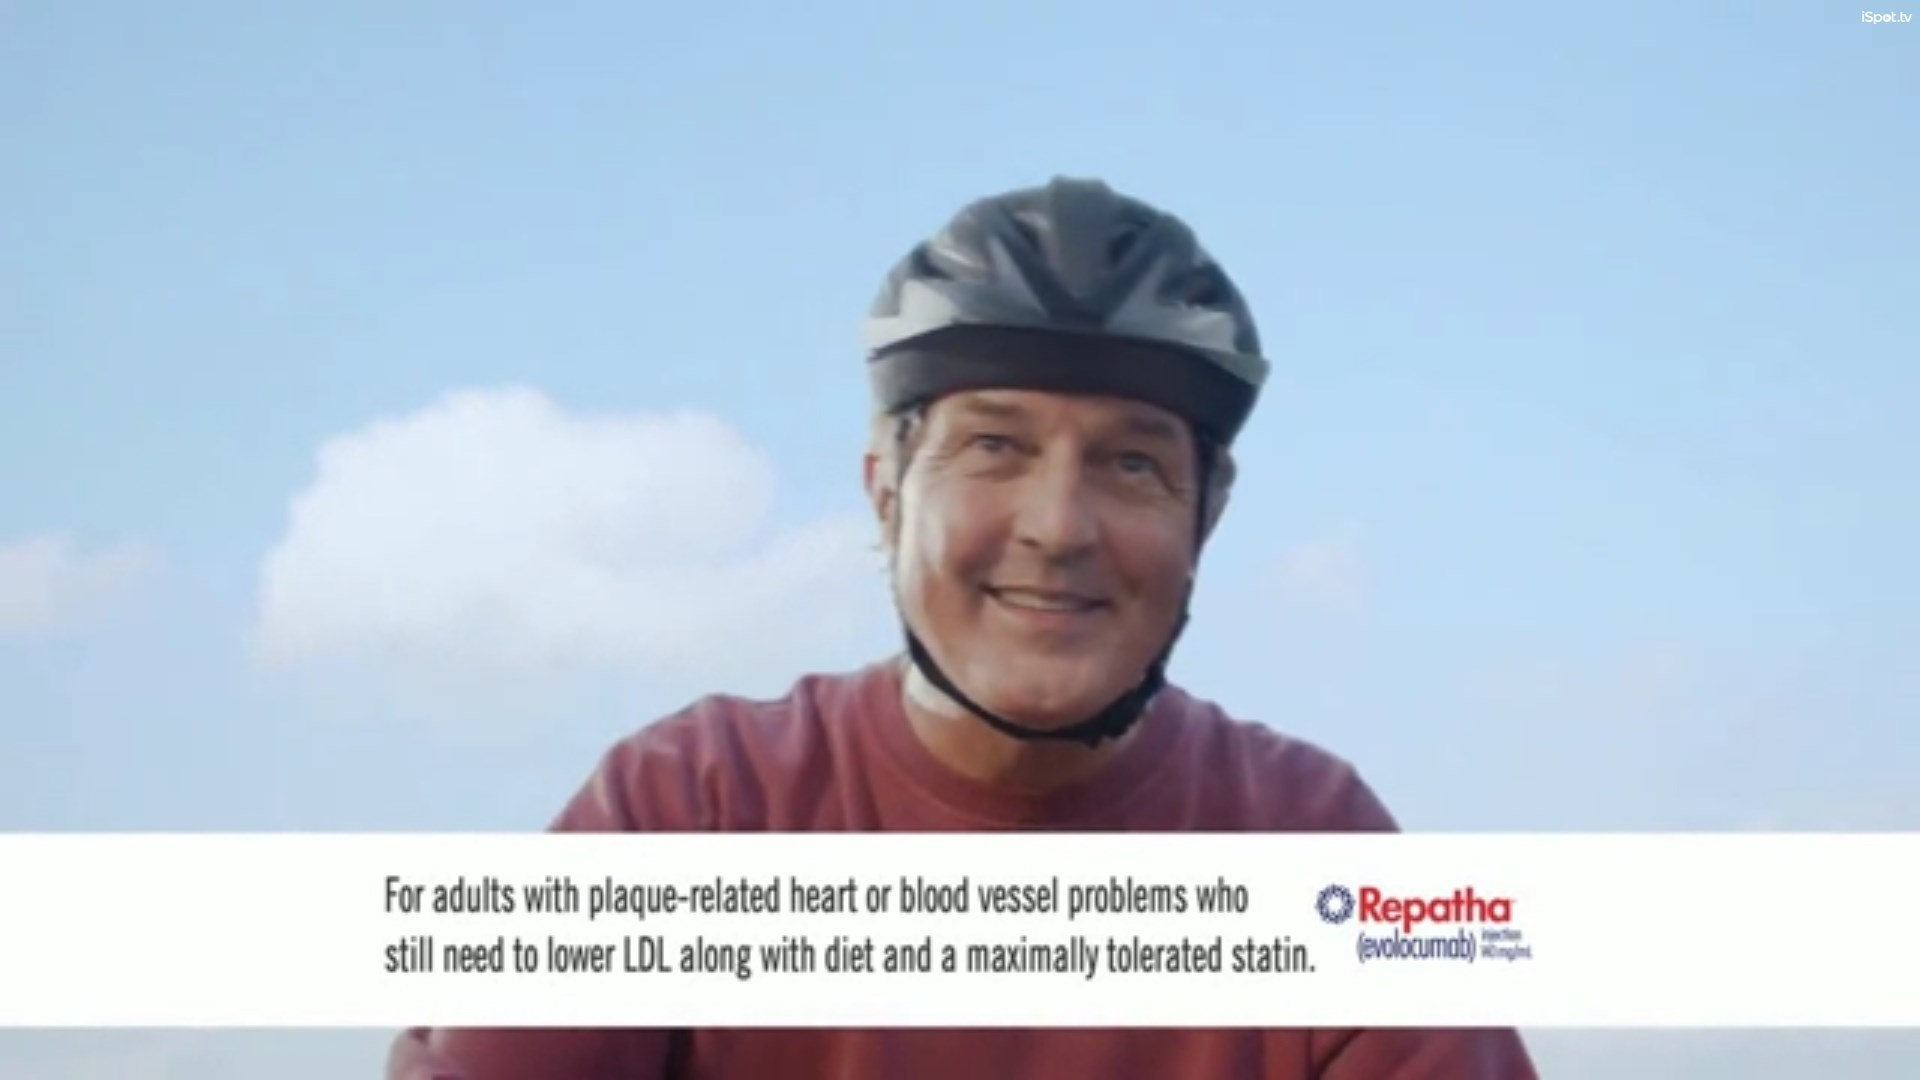 Amgen launches new Repatha DTC ad